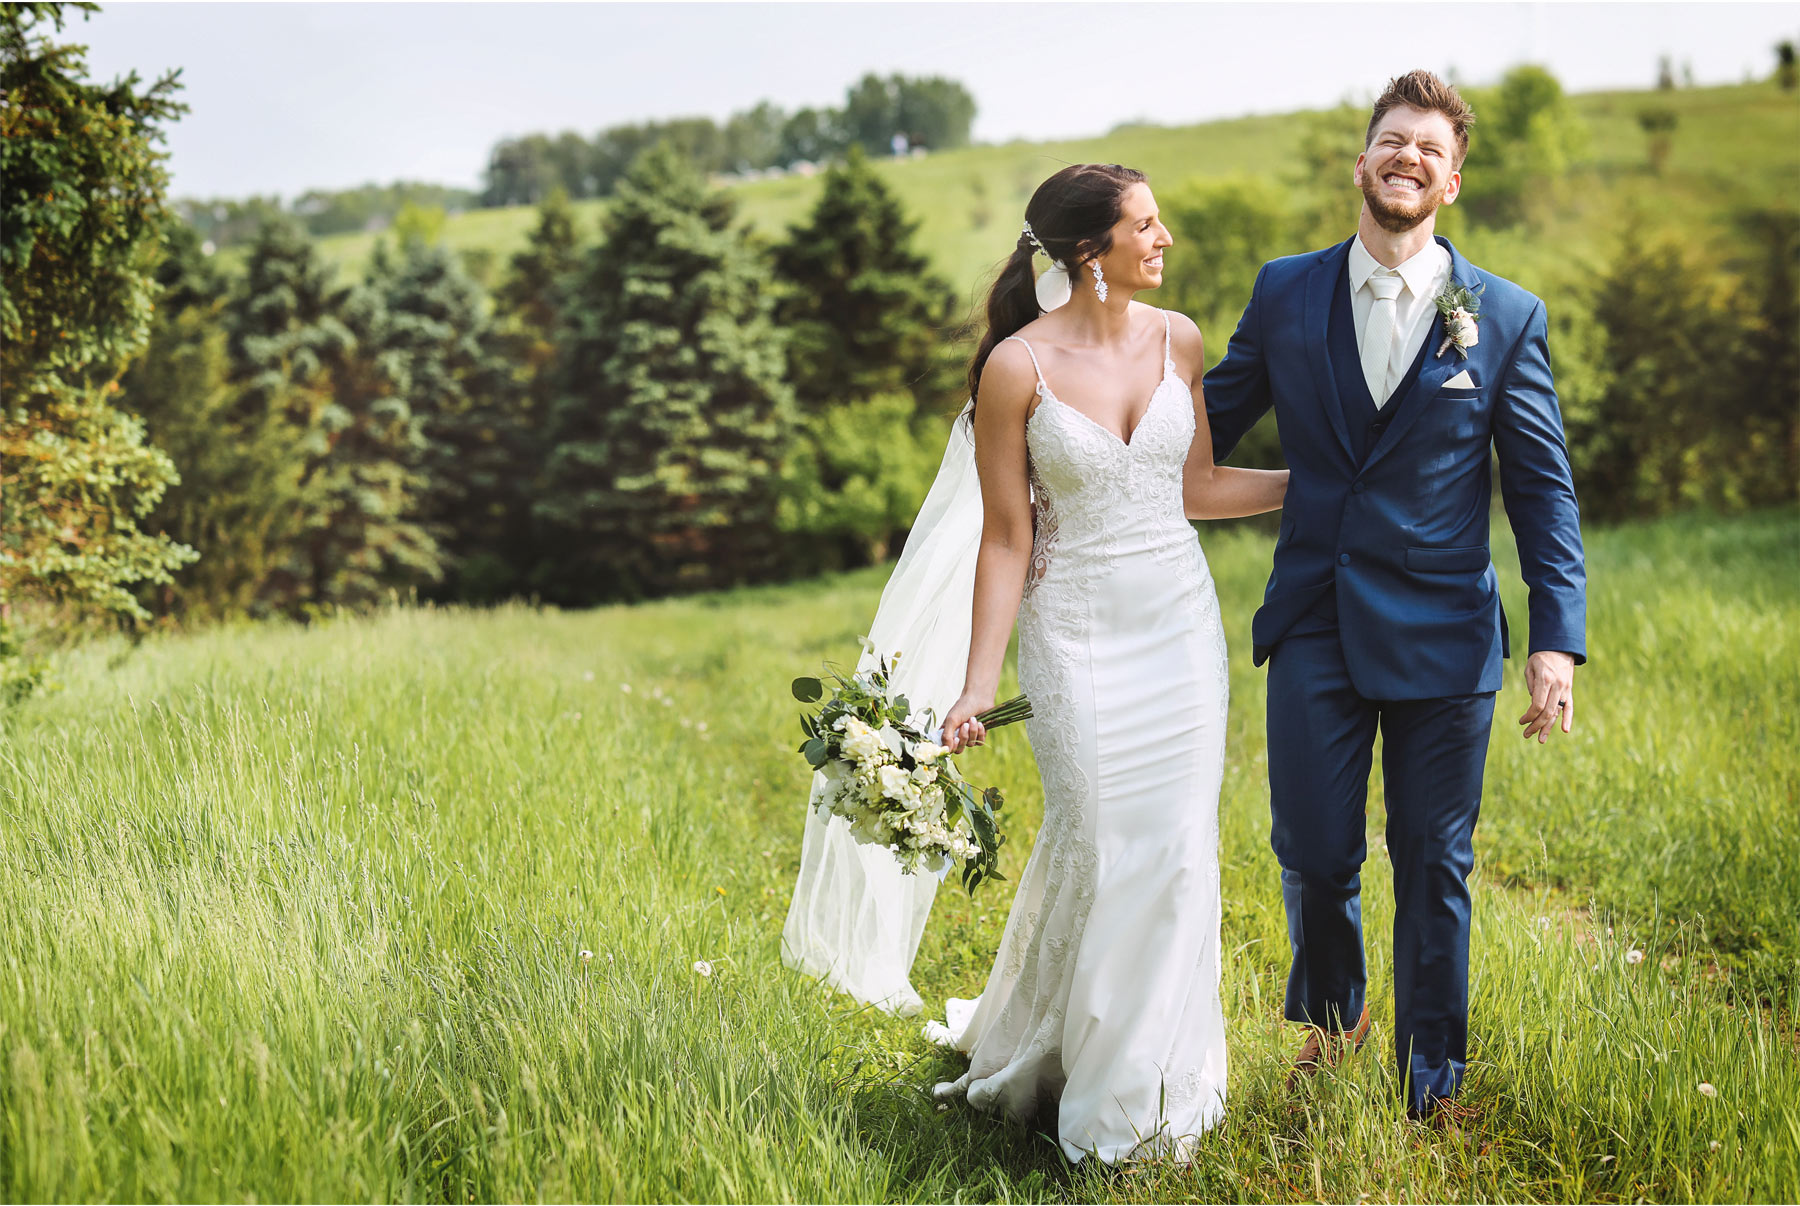 15-Minneapolis-Minnesota-Wedding-Andrew-Vick-Photography-Bavaria-Downs-Bride-Groom-Summer-Field-Laughing-Paige-and-Blake.jpg